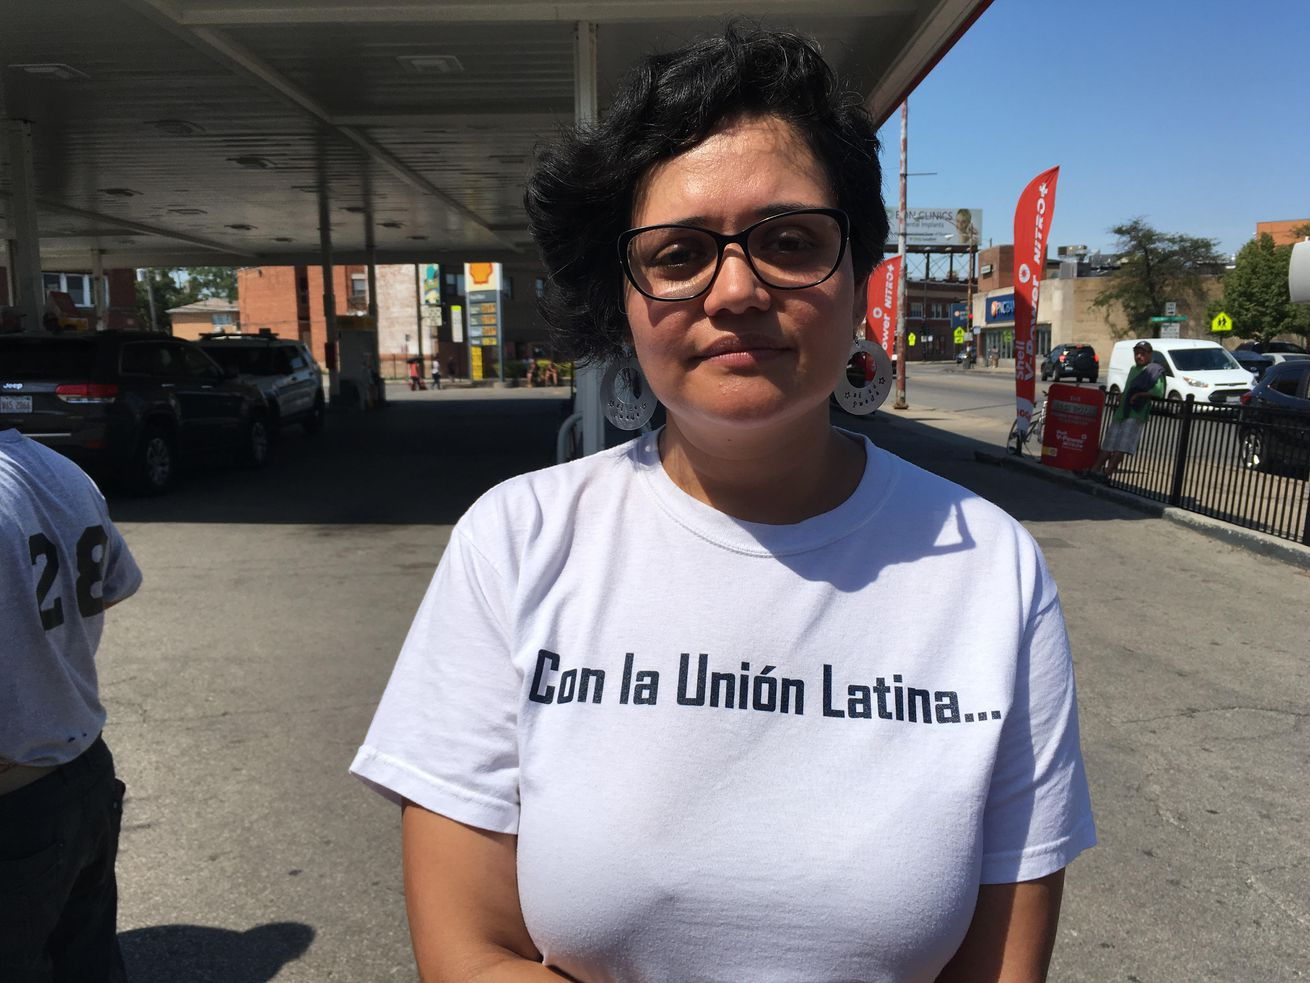 Analia Rodriguez, executive director of the Latino Union of Chicago, in 2016. She is one of 14 recipients of a new grant funded by The Field Foundation of Illinois at the John D. and Catherine T. MacArthur Foundation dedicated to funding grassroots leaders in Chicago. | Maudlyne Ihejirika/Sun-Times